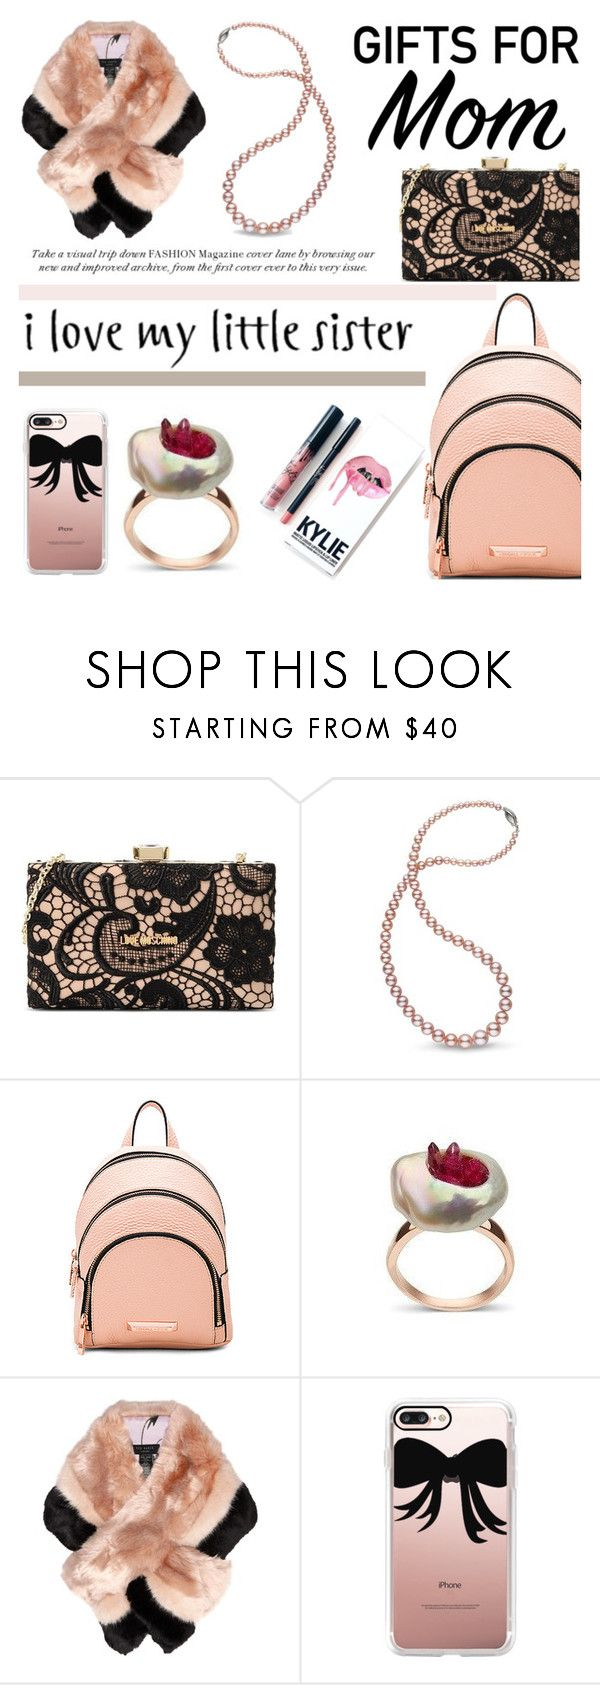 """Gift Guide: Your Mom and Sis"" by littlehjewelry ❤ liked on Polyvore featuring Love Moschino, Kendall + Kylie, Kylie Cosmetics, Ted Baker, Casetify, giftguide, contestentry, pearljewelry, littlehjewelry and christmas2016"